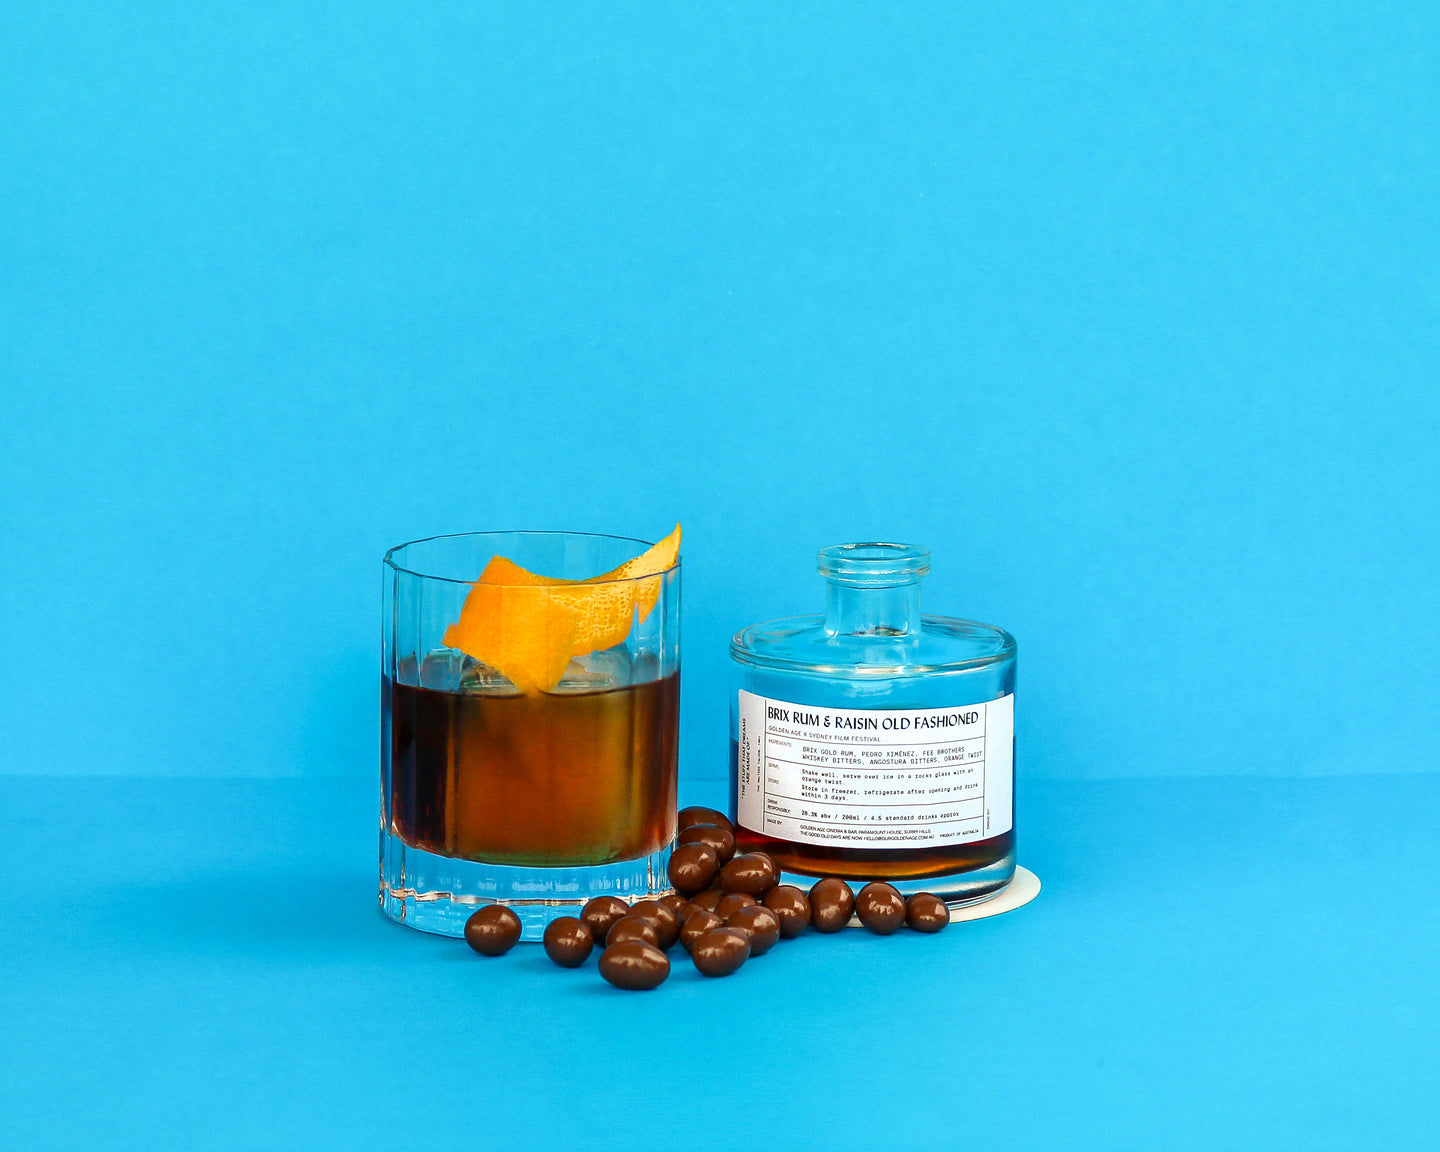 Brix Rum and Raisin Old Fashioned